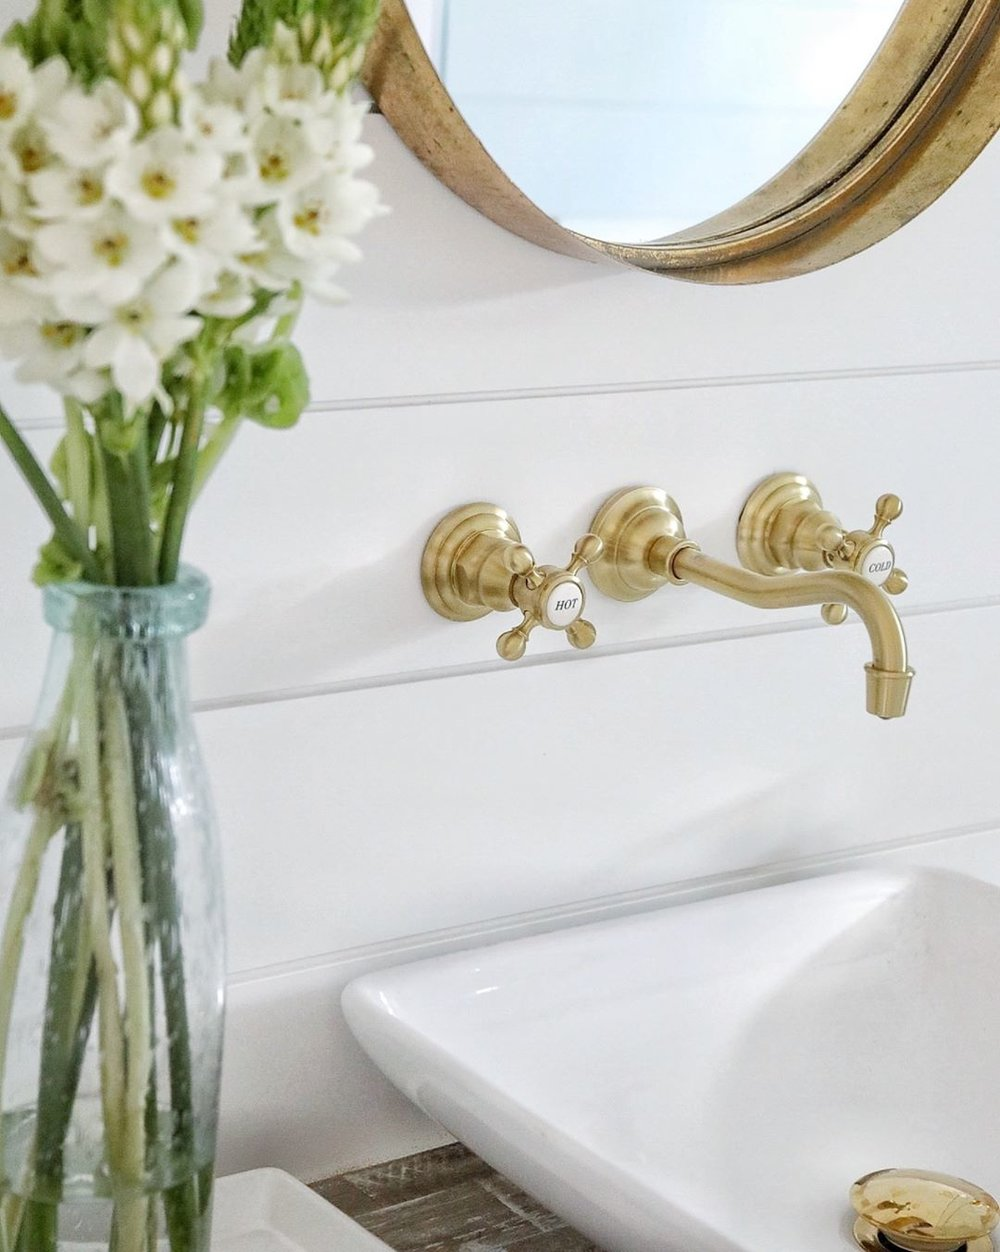 newport brass traditional wall mount widespread lav faucet with cross handles and gooseneck spout in brushed gold - the ultimate guide to luxury plumbing by the delight of design